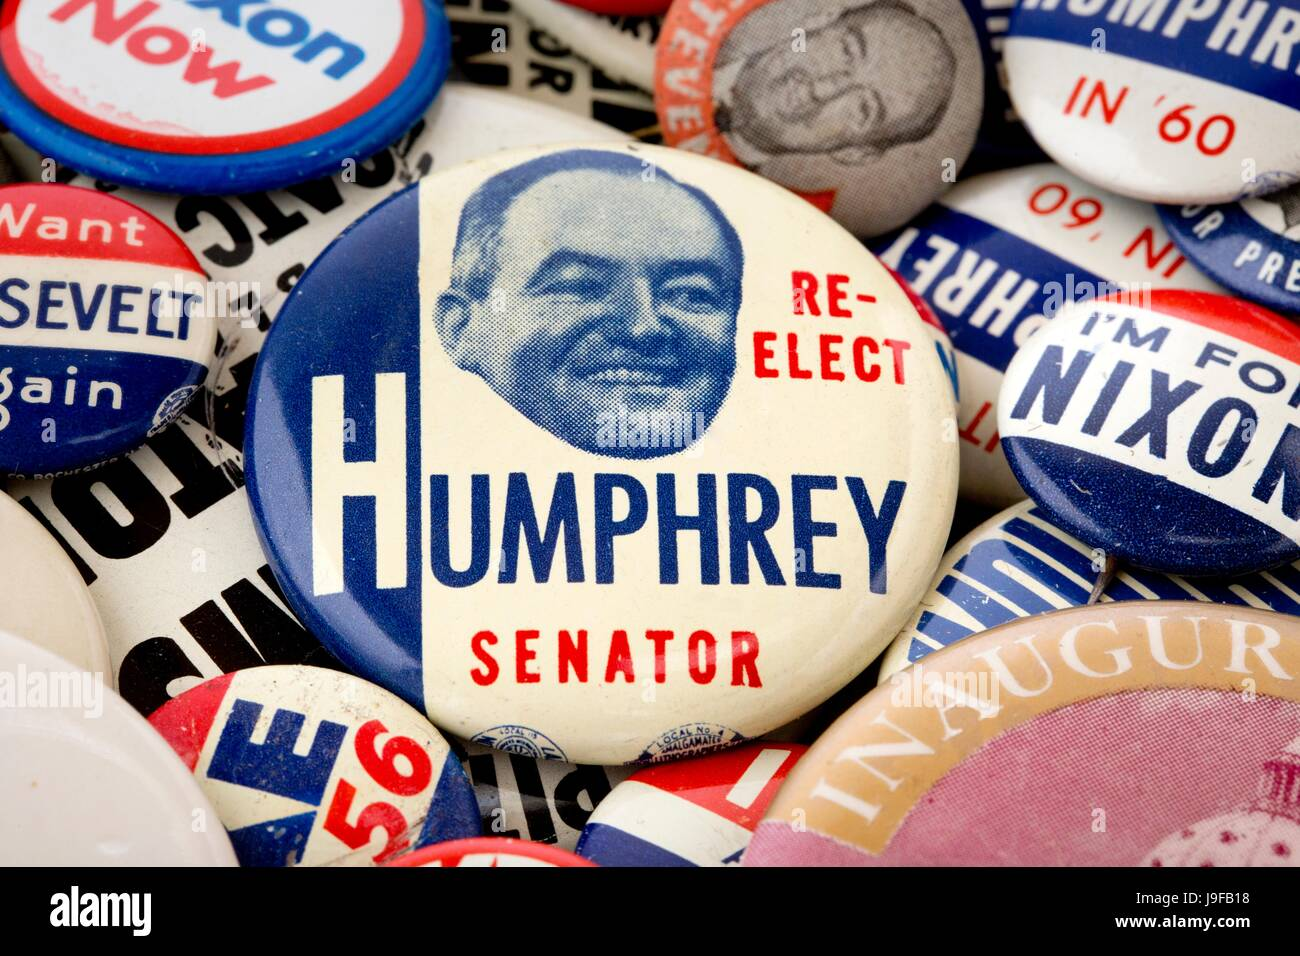 A 1954 Re-Elect Hubert H. Humphrey Senator Pinback Button on top of a pile of political pin-back buttons - Stock Image